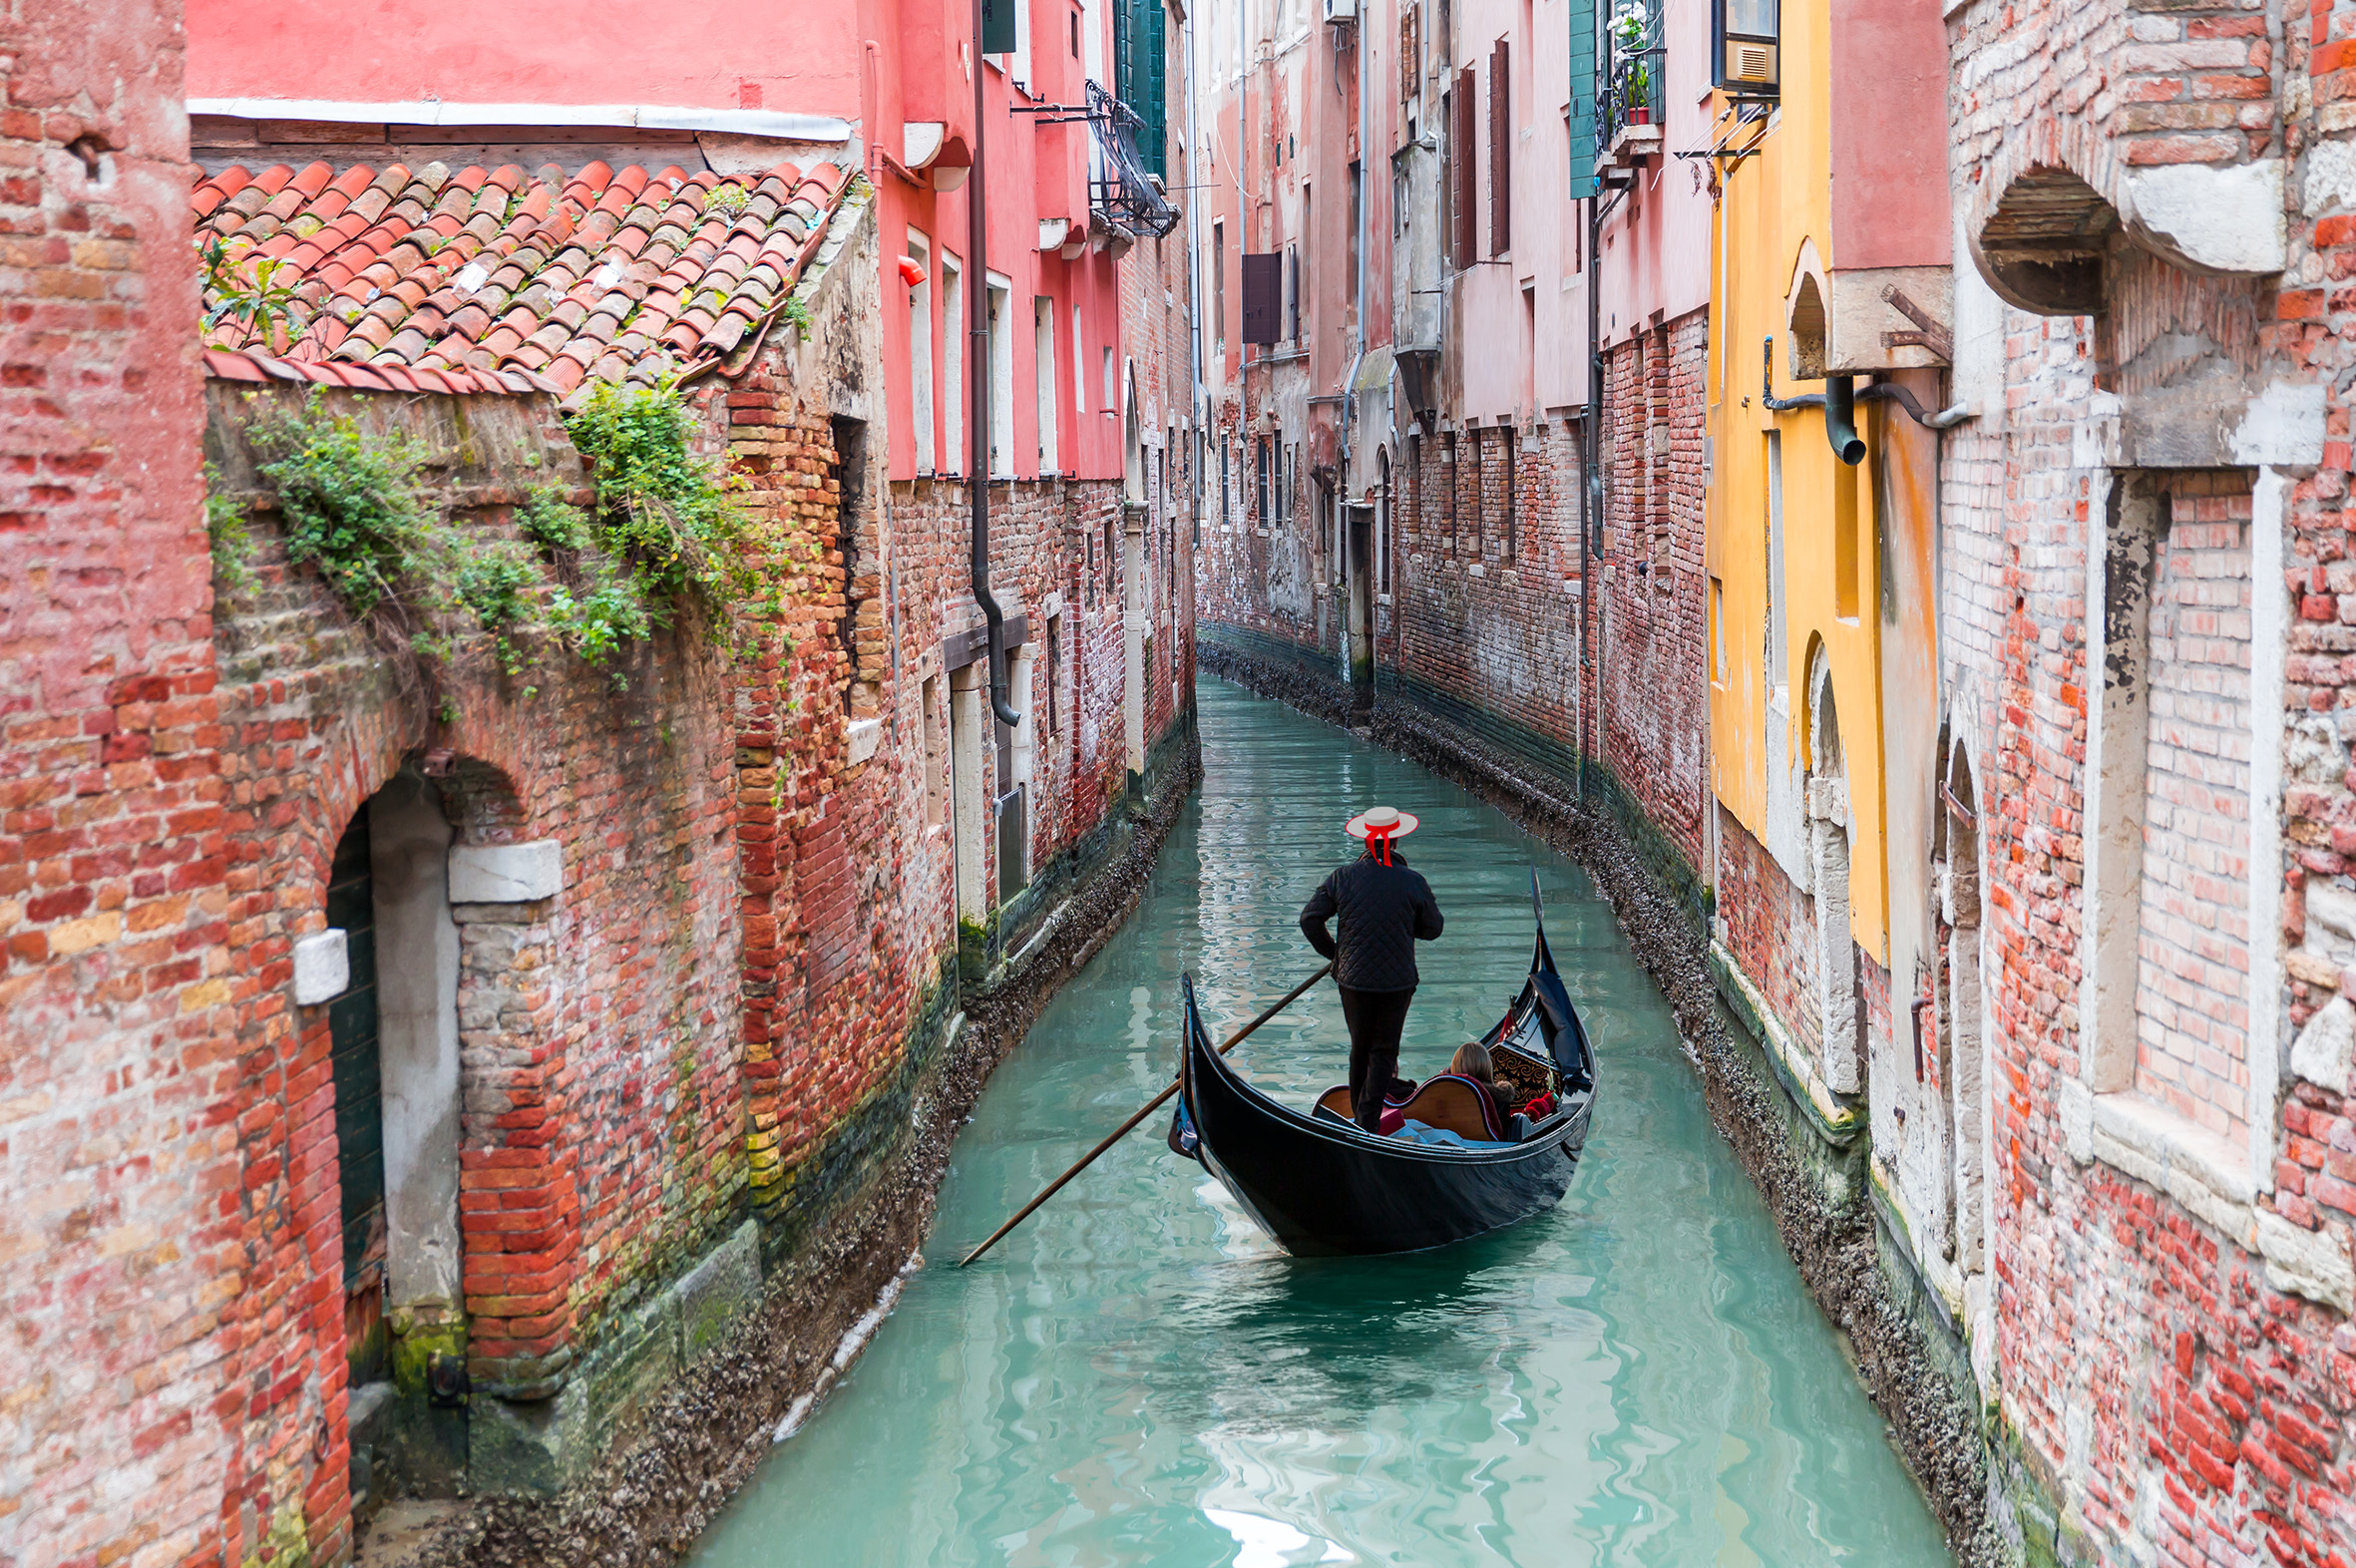 We've rounded up a list of the very best things to do on your trip to Venice, Italy.